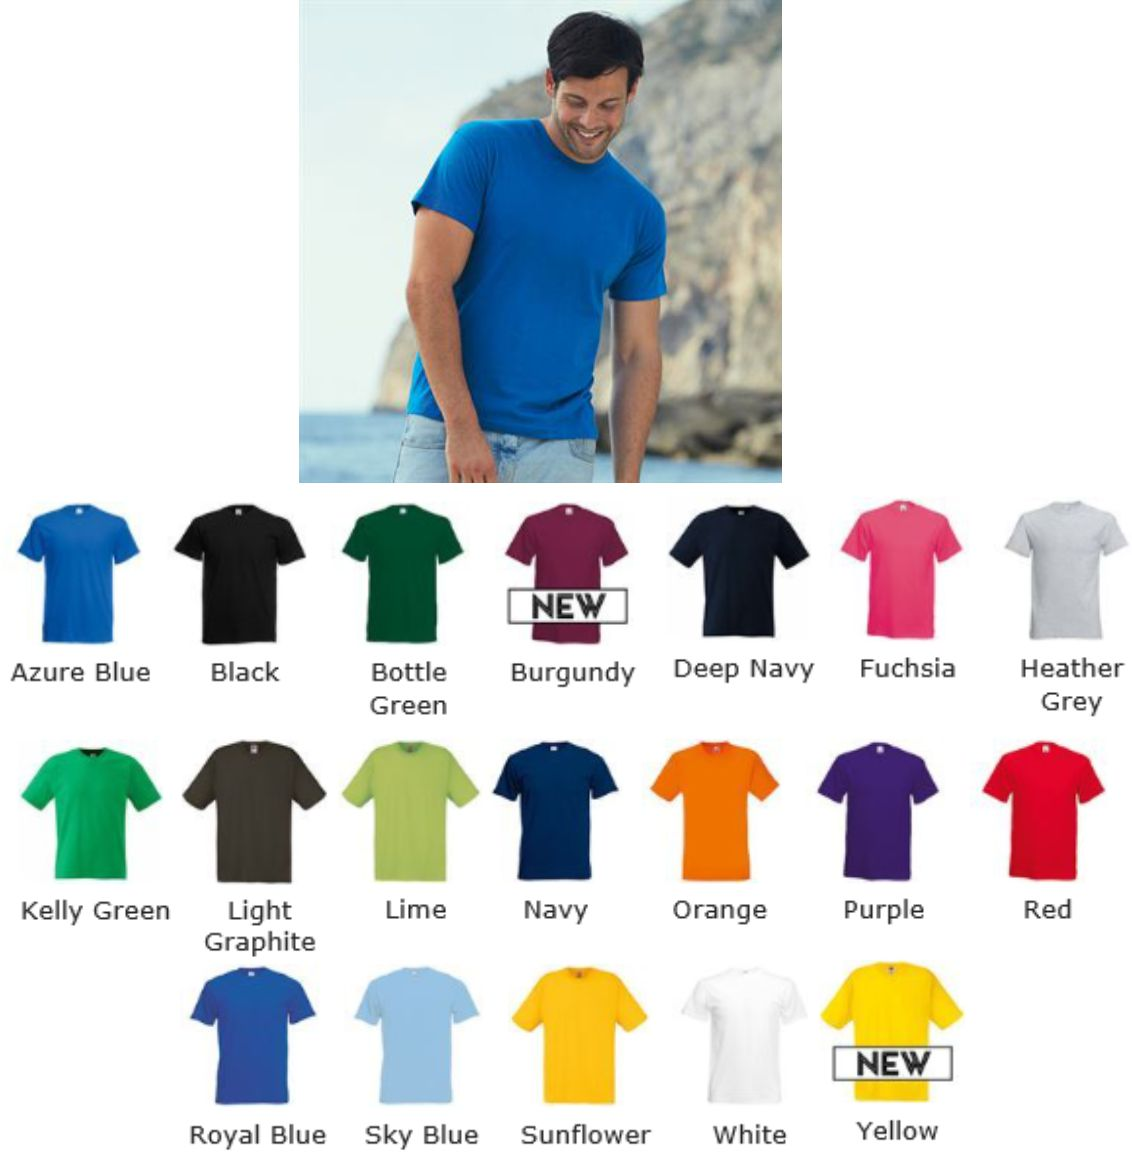 Fruit of the Loom 61082 SS22 Original Full Cut tee shirt